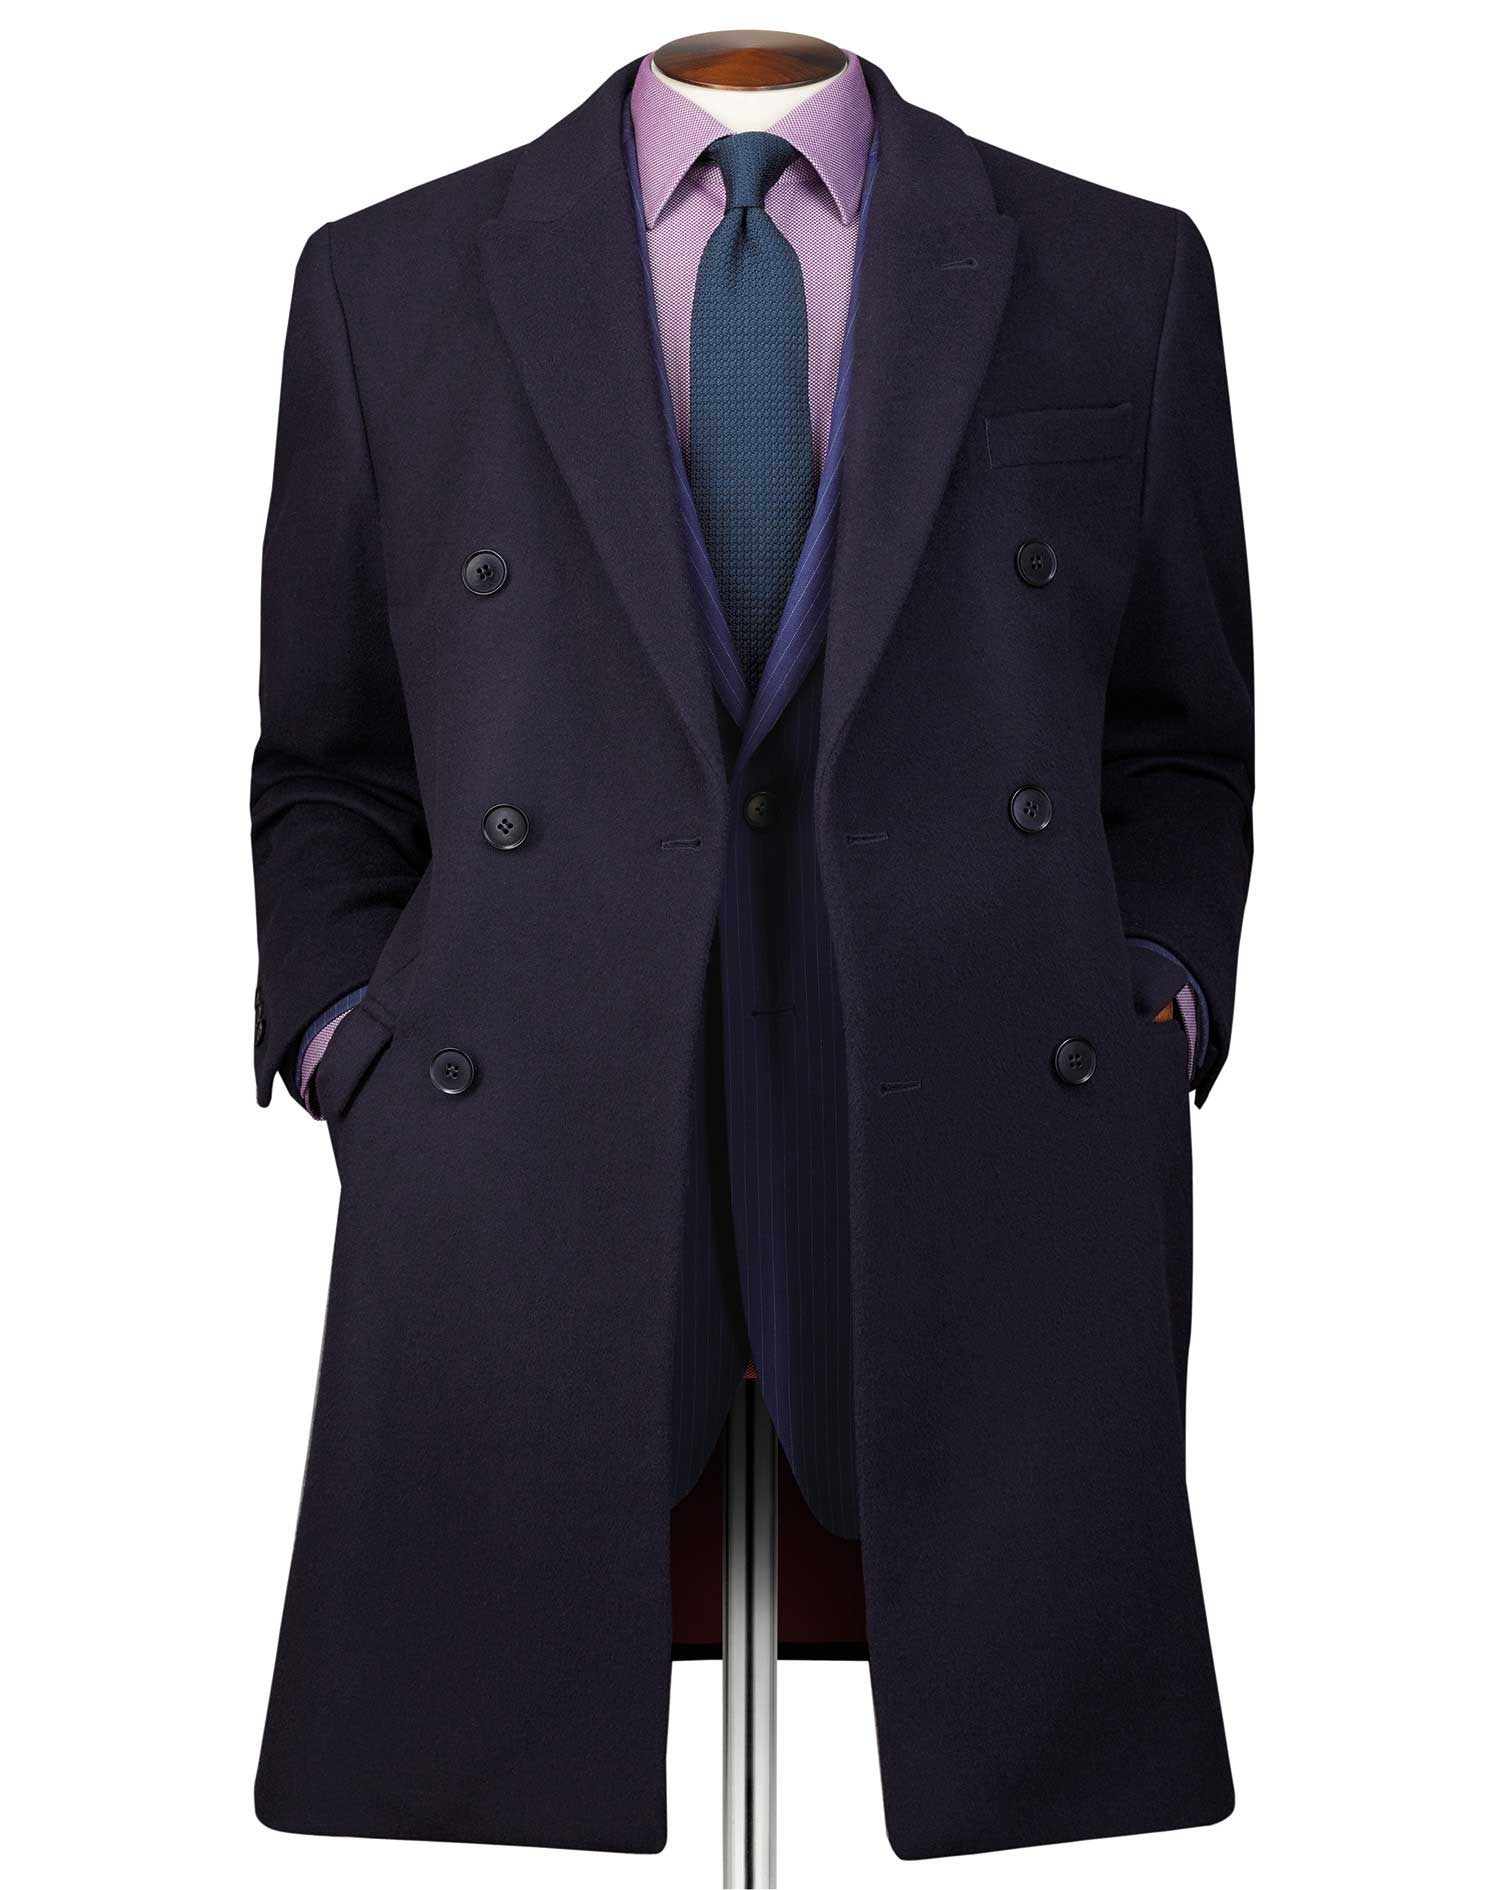 Navy Wool and Cashmere Double Breasted Epsom Overcoat Size 42 Regular by Charles Tyrwhitt